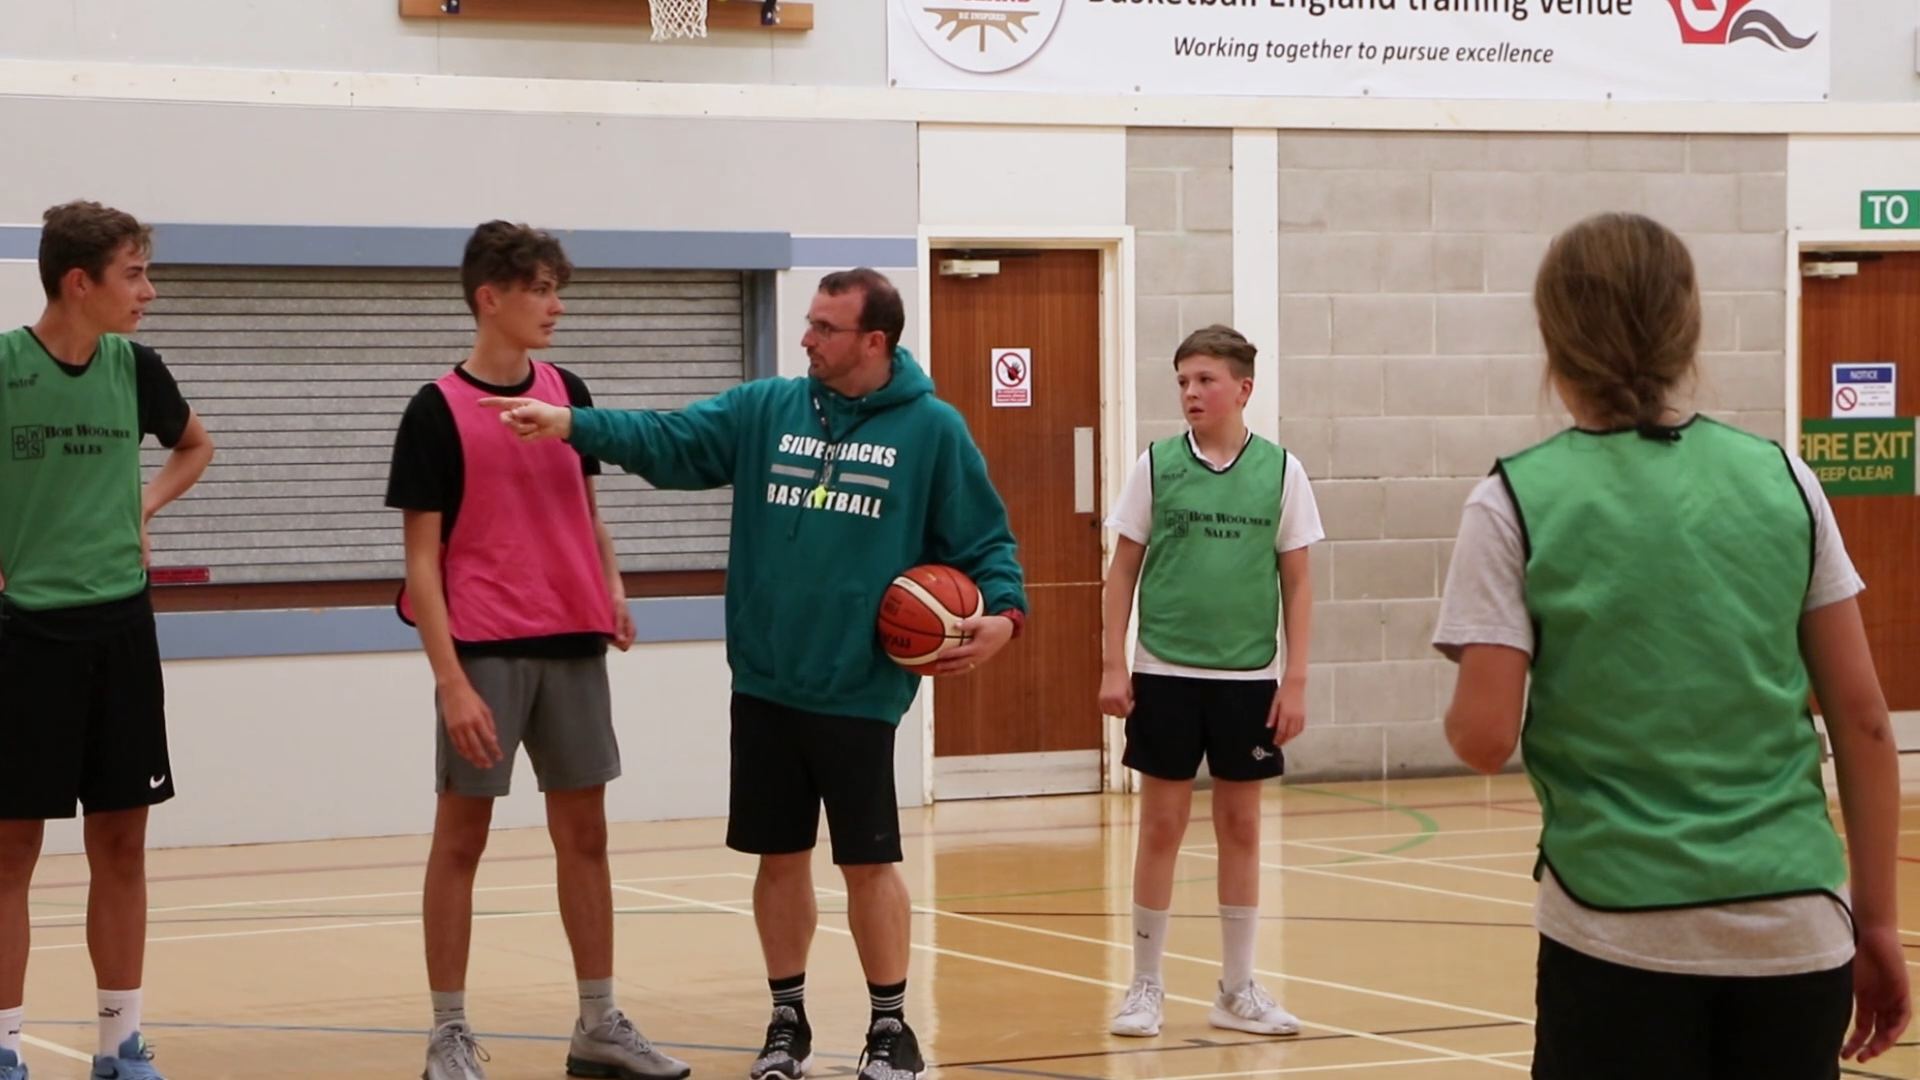 Pete Daines, Basketball Coach at Yateley Manor School set up his club the Yateley Silverbacks in 2015.